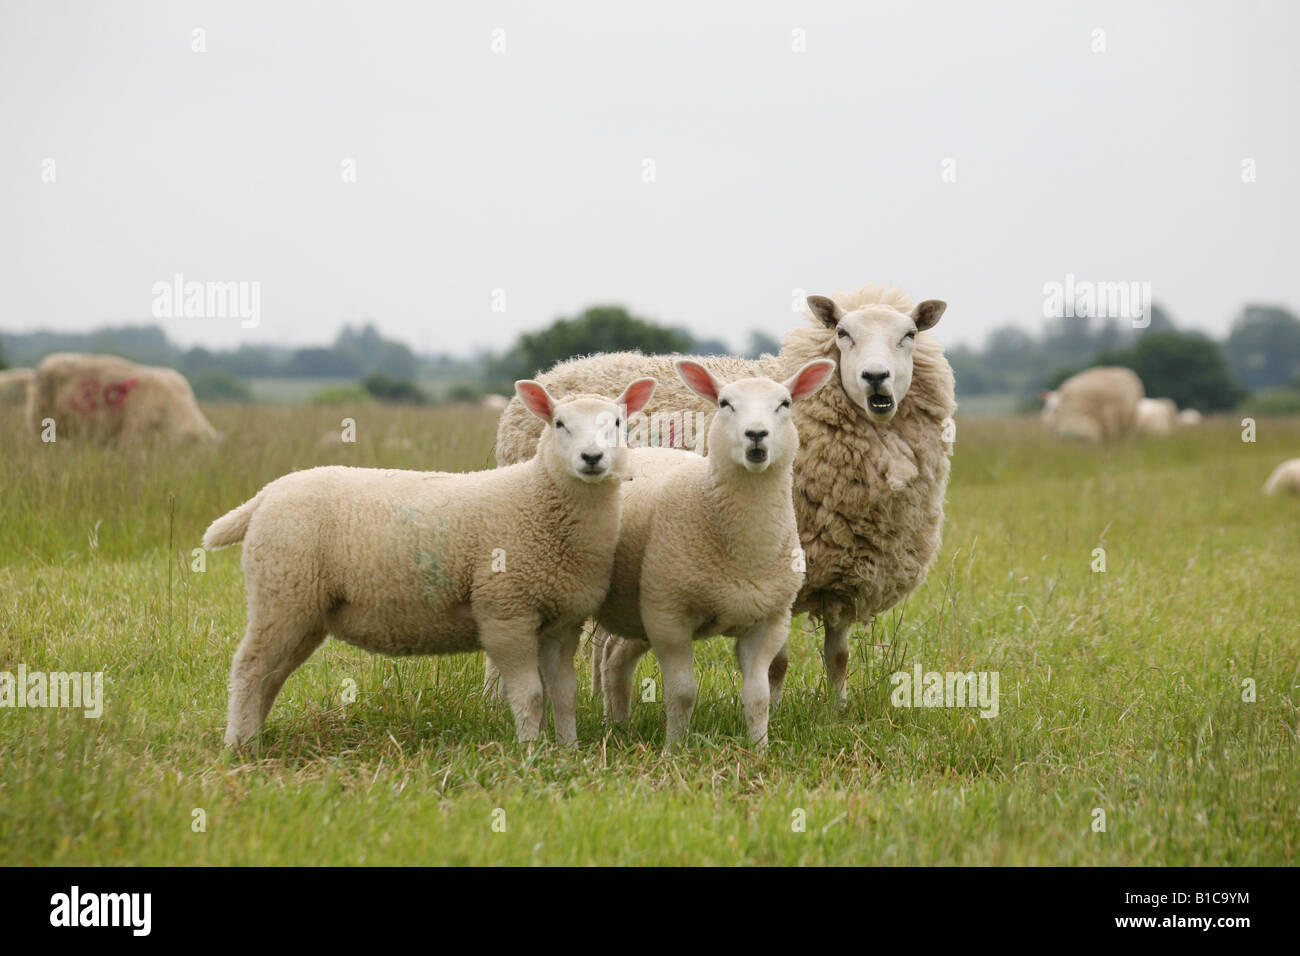 Two lambs and their mother bleating and showing teeth in a field at Steeple Bumstead on the Essex Suffolk Borders - Stock Image